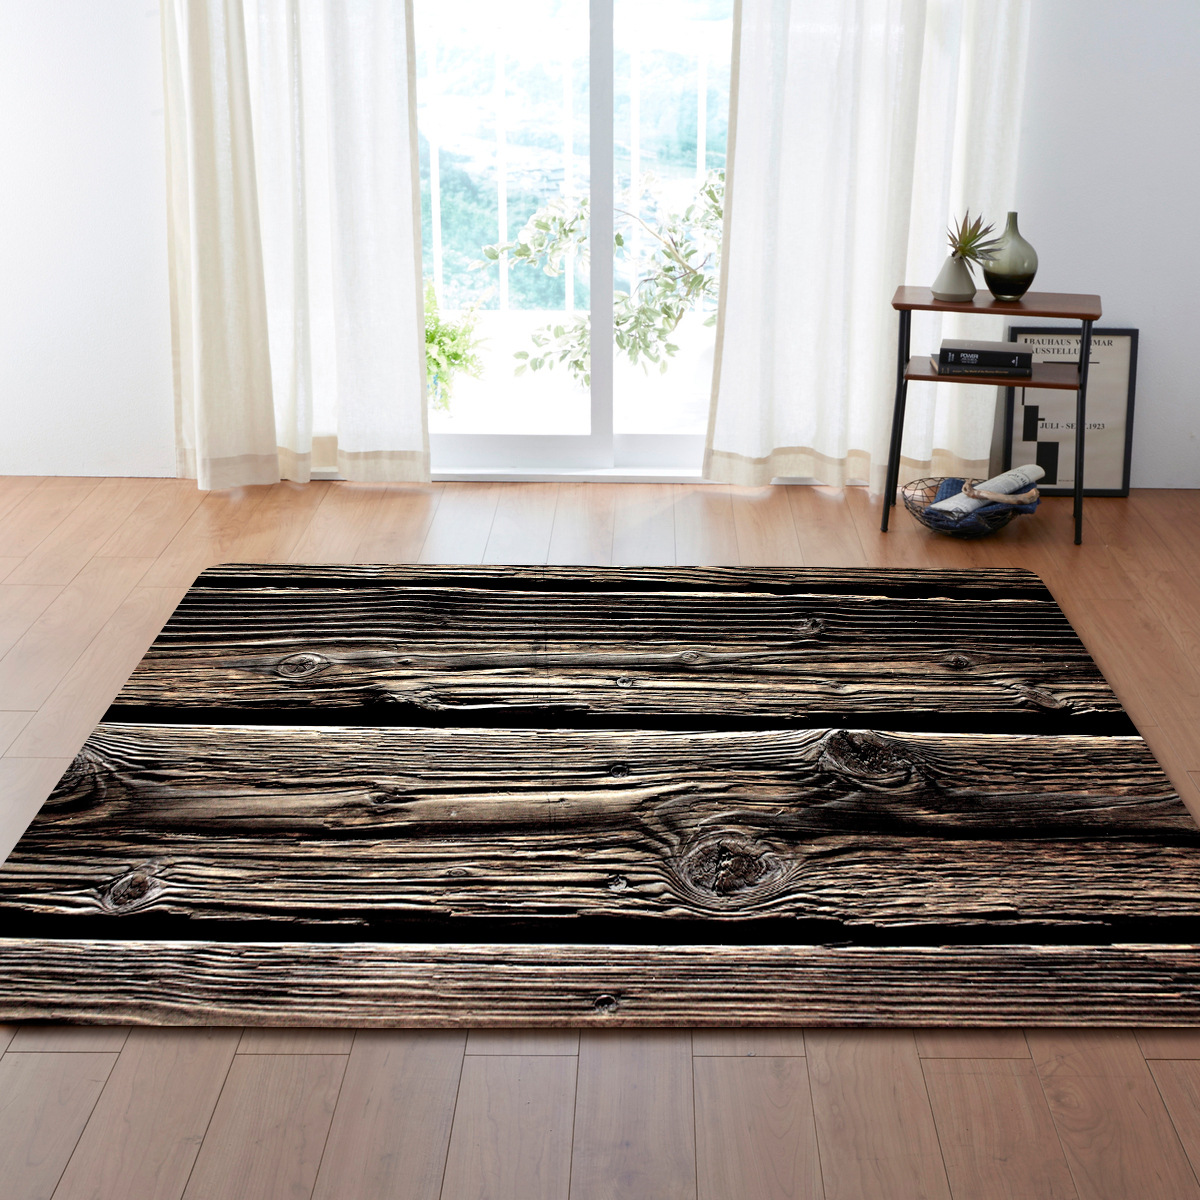 WUJIE Anti-slip Carpets for Living Room Modern Wood Grain Pattern Striped Area Rugs Large Floor Mat Room Decoration image